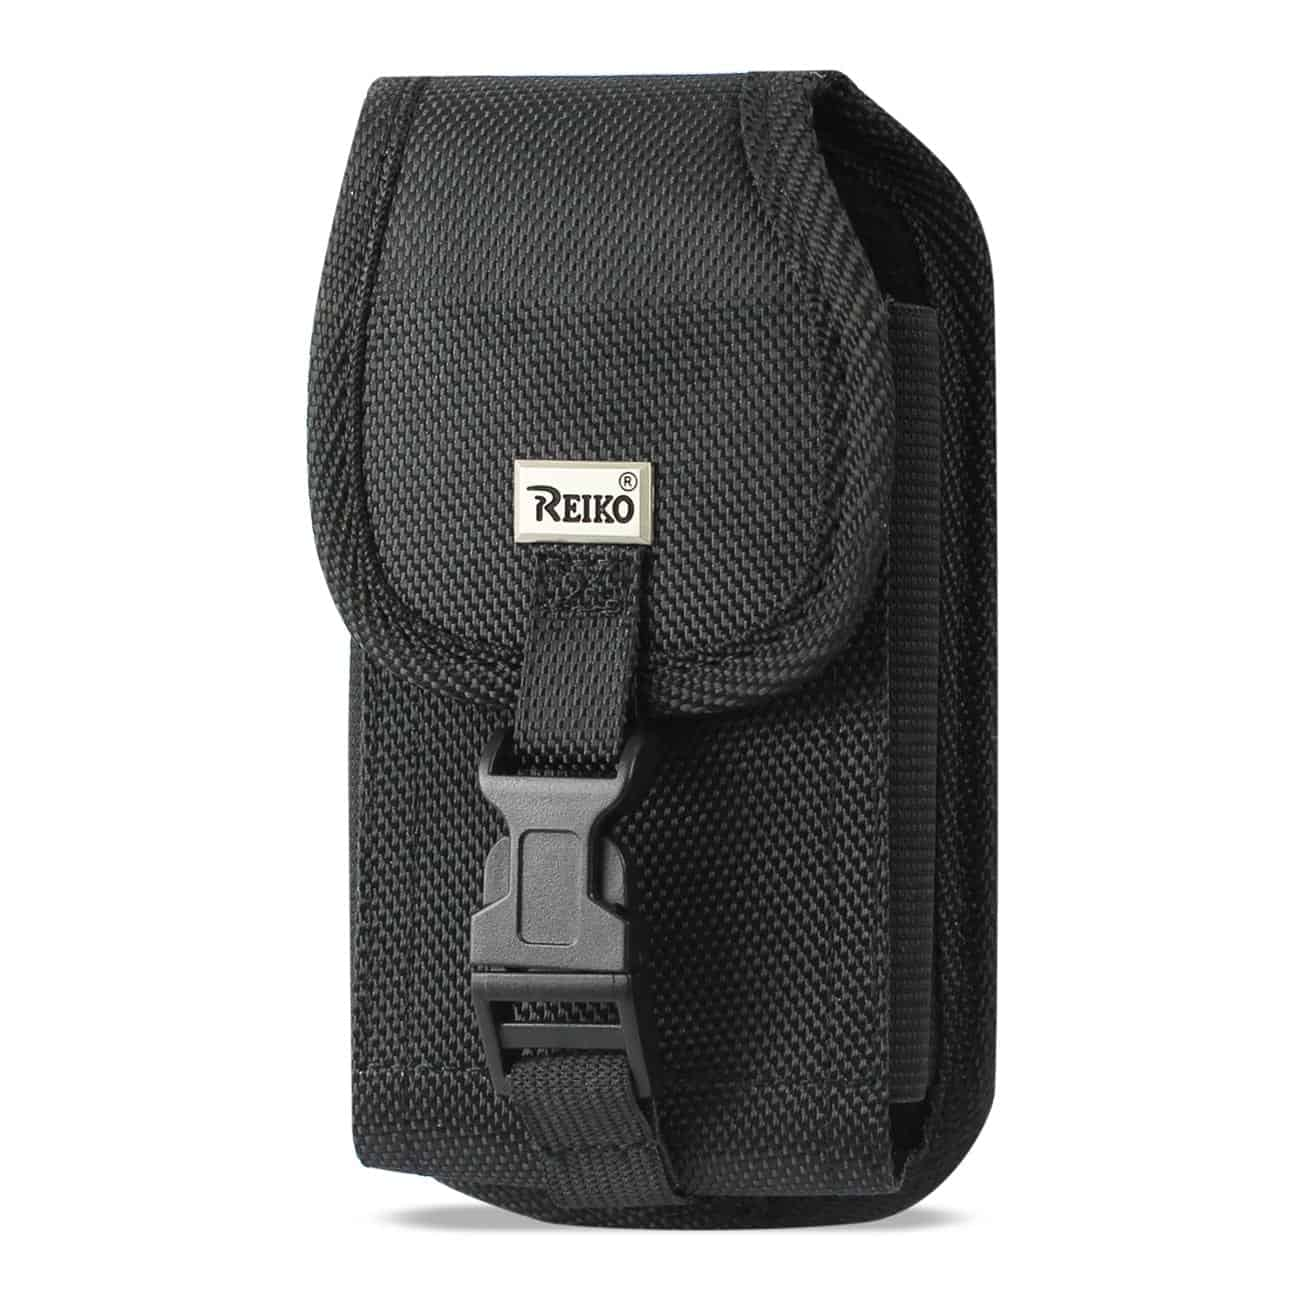 Vertical Rugged Pouch With Buckle Clip In Black (5.8X3.2X0.7 Inches)